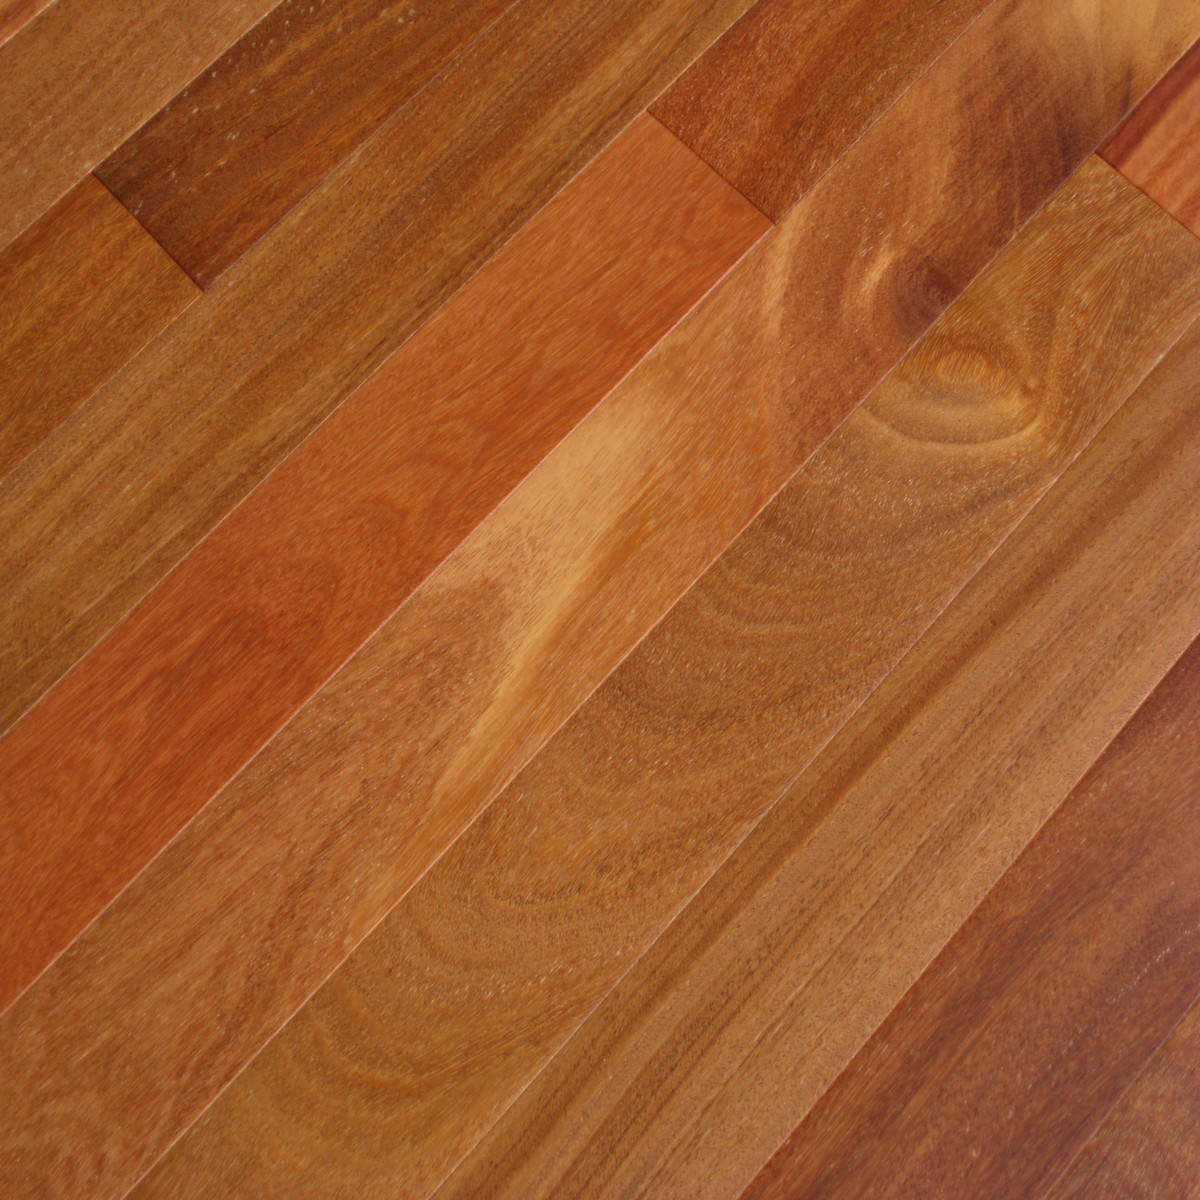 Cumaru Dark Brazilian Teak Hardwood Flooring Prefinished Solid